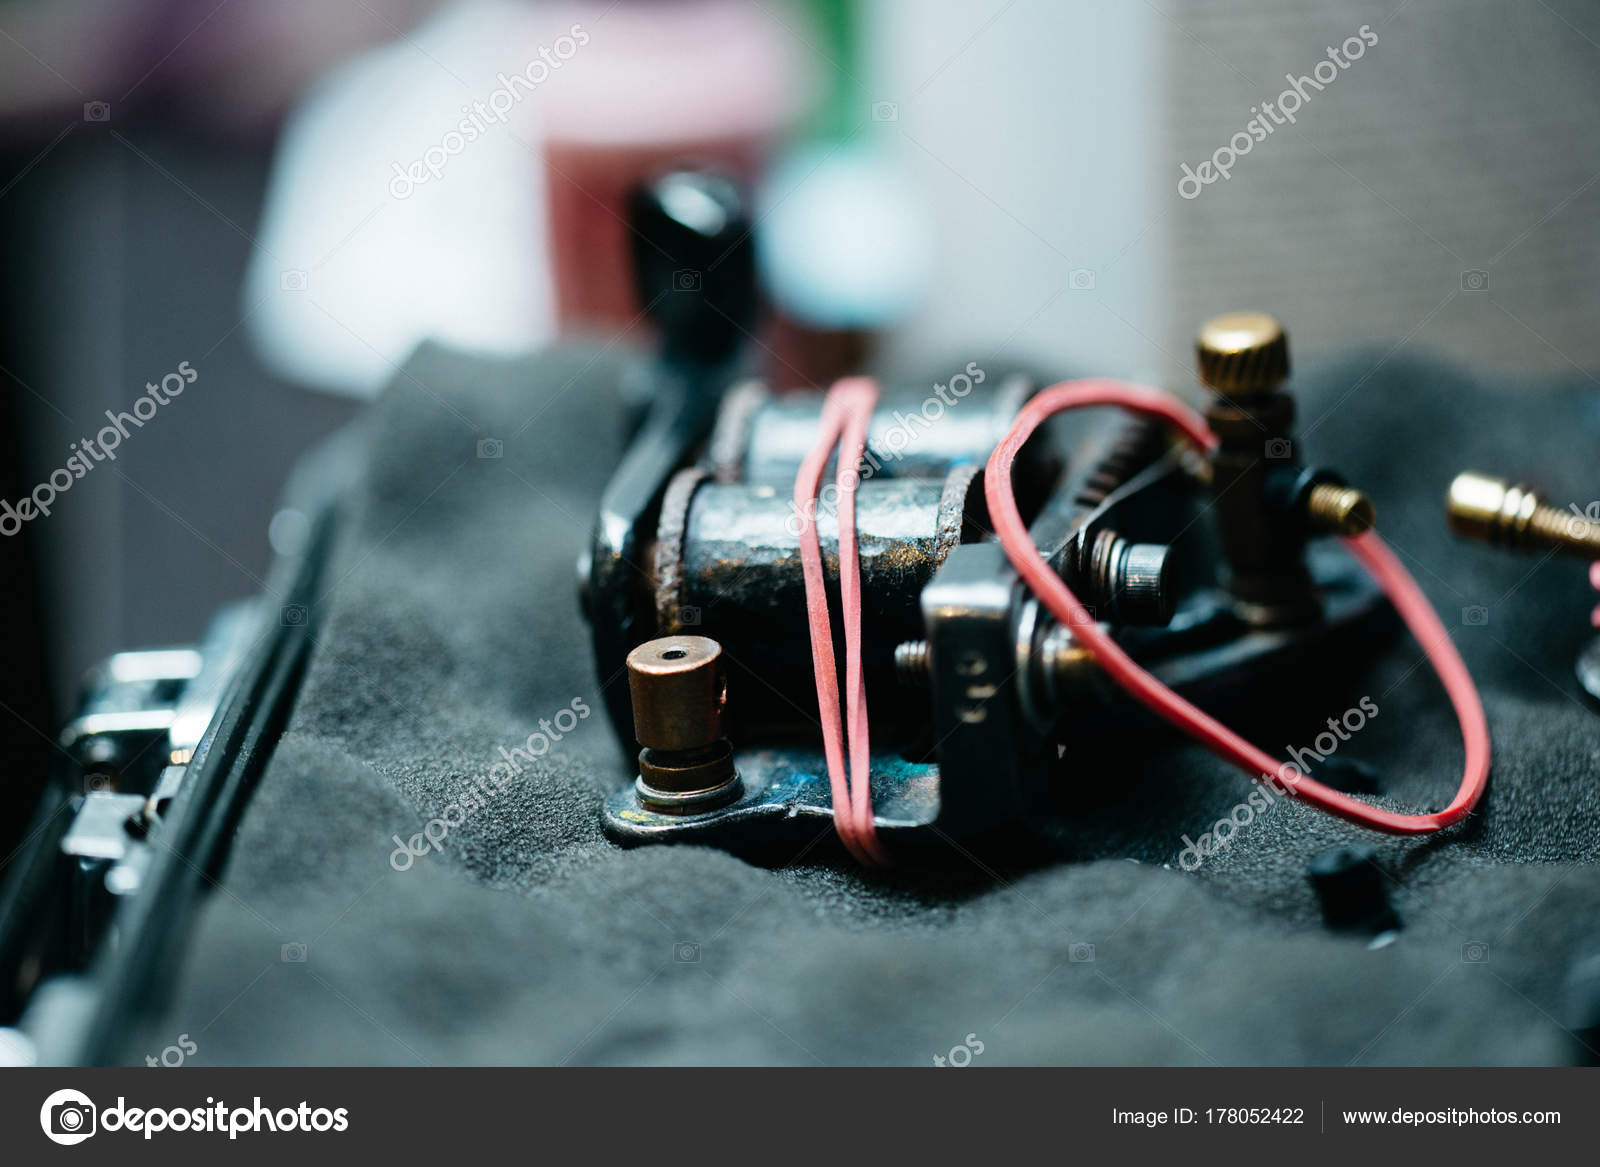 Tattoo equipment stock photo malyuginphoto 178052422 professional making tattoo in salon close up tattoo machine tattoo equipment photo by malyuginphoto solutioingenieria Gallery